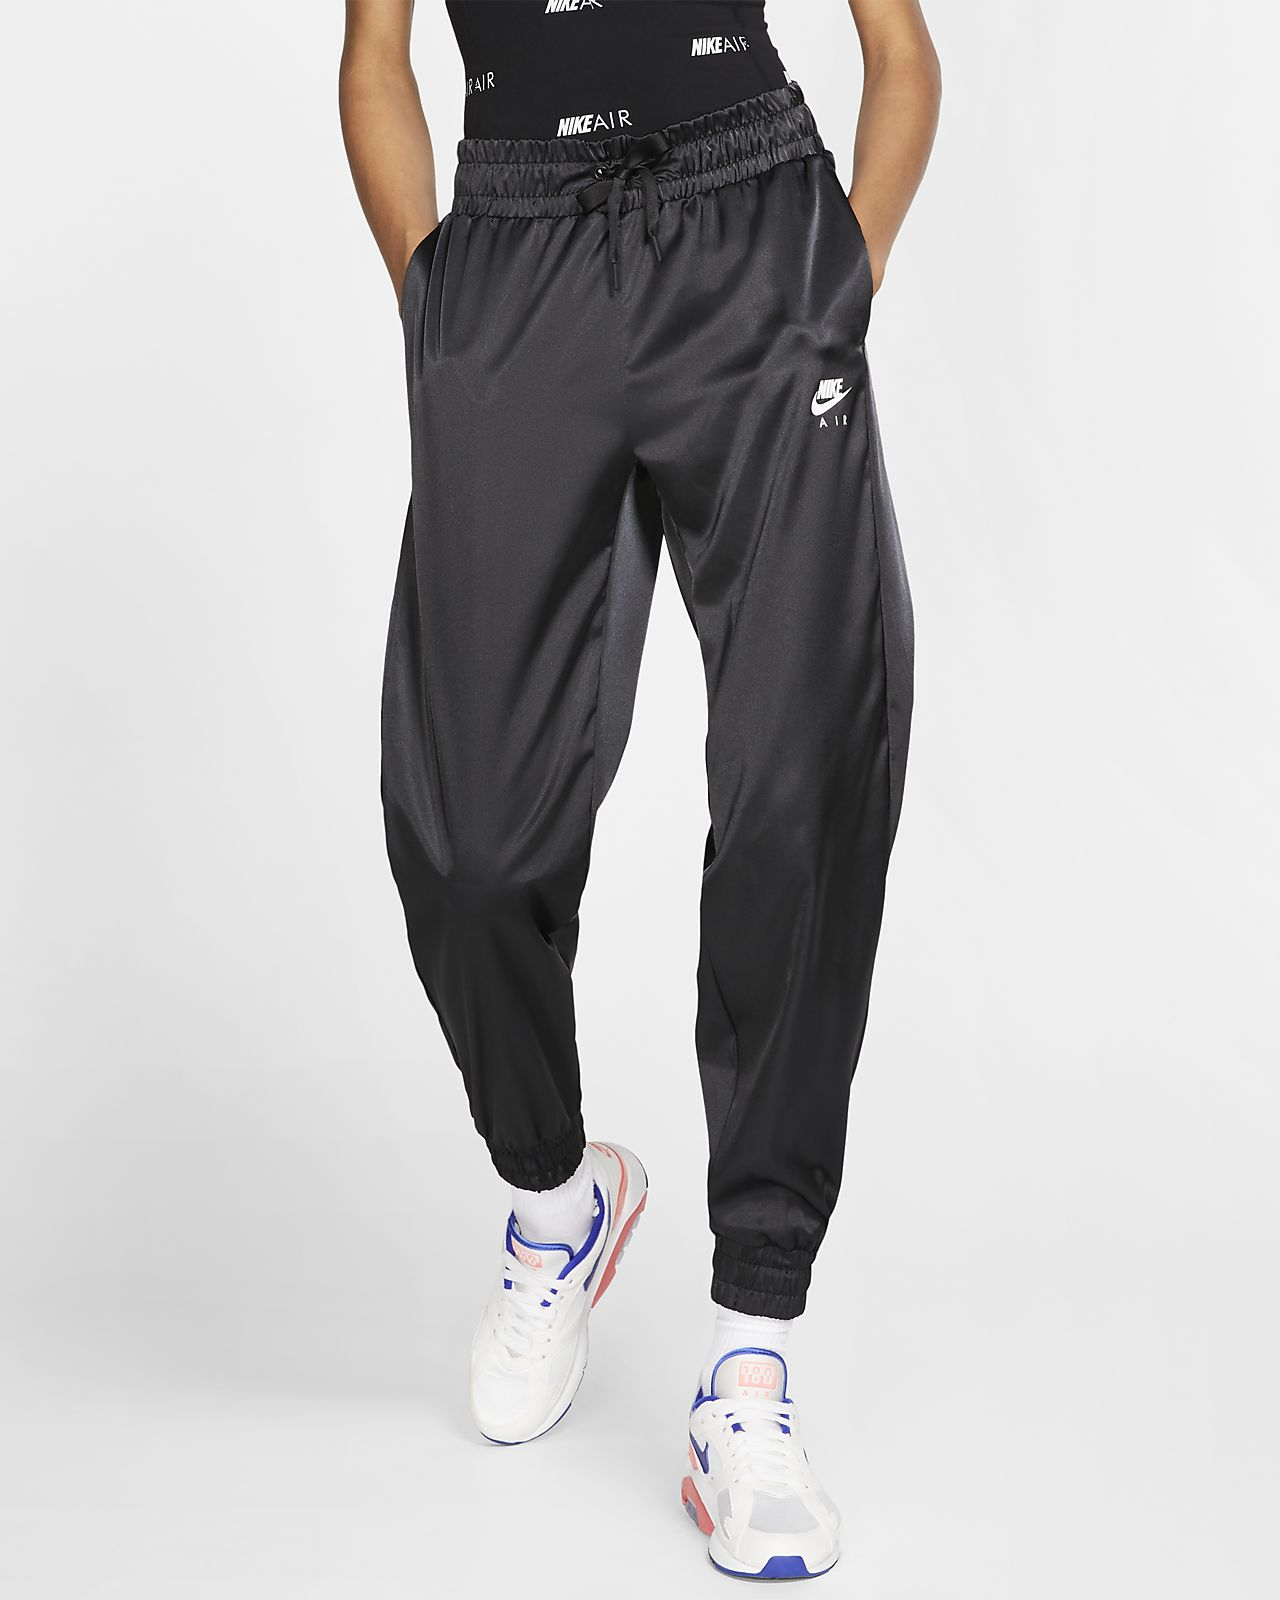 nike pantalon survetement femme